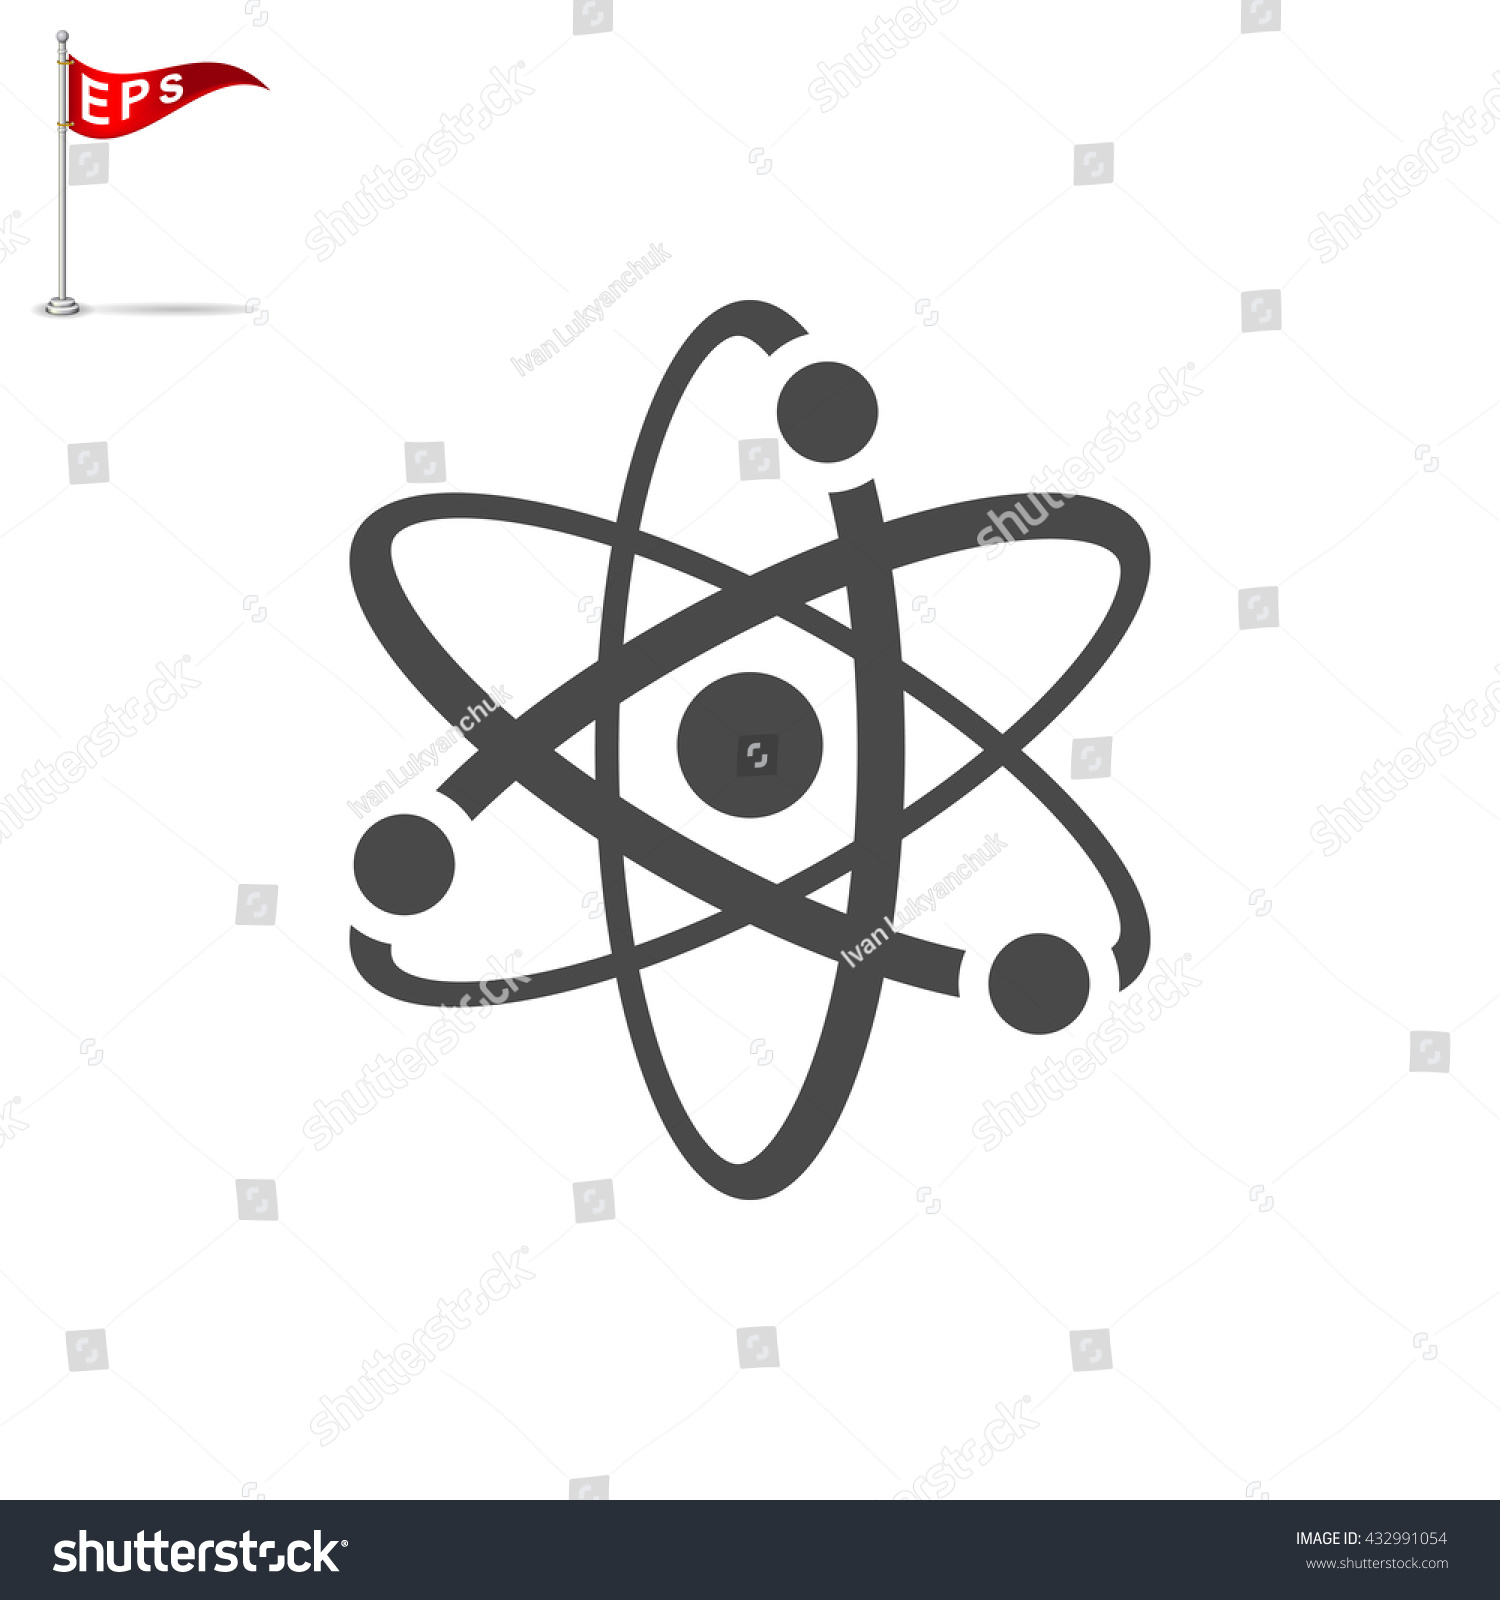 Atom icon vector atomic sign isolated stock vector 432991054 atom icon vector atomic sign isolated nuclear symbol biocorpaavc